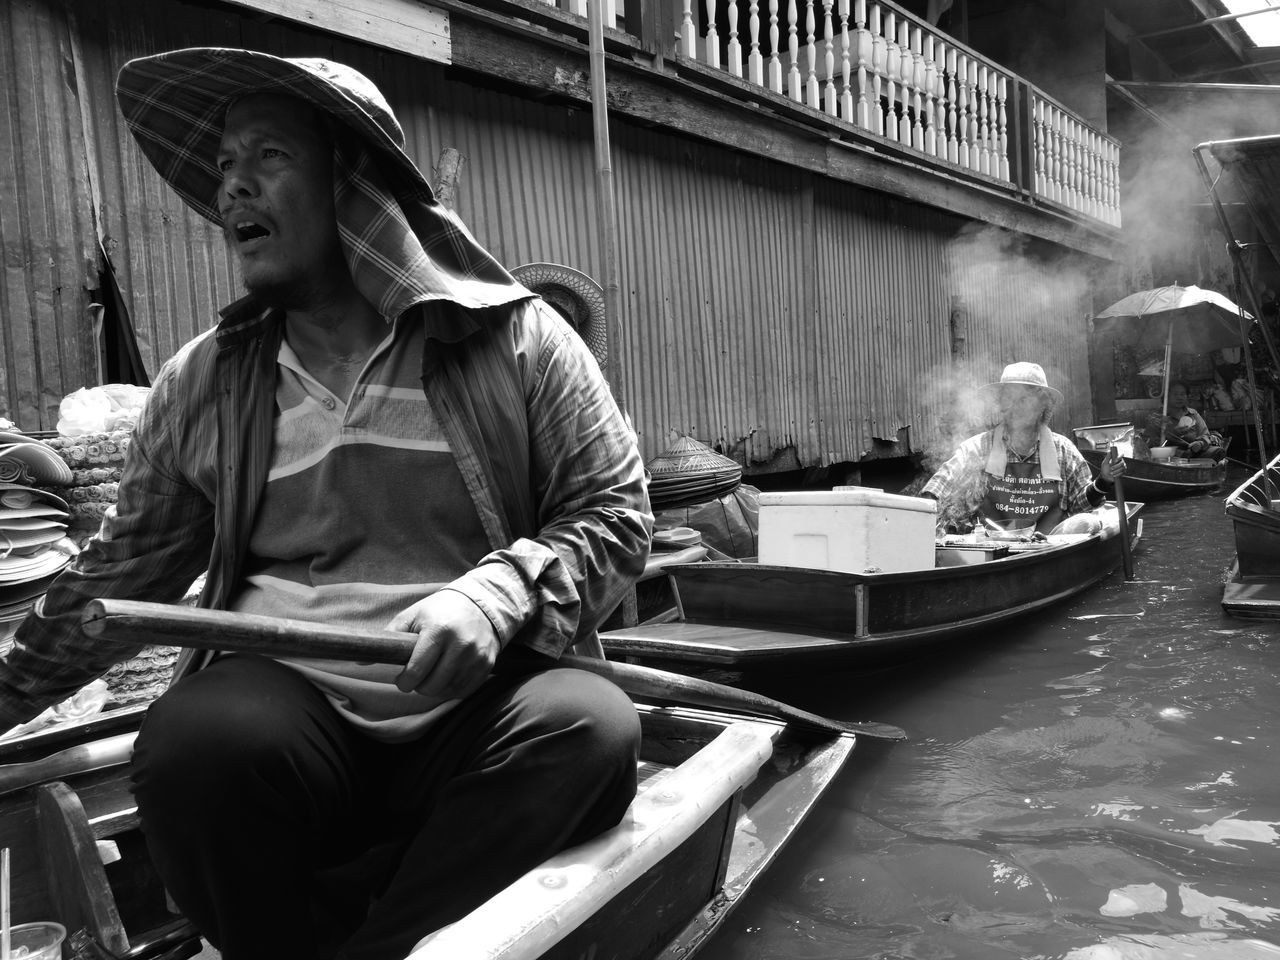 The boatman Boatman Rivermarket People Bangkok Thailand Bangkok Streetphotography Street Photography Streetphotographer Streetphotography Street EyeEm Best Shots - The Streets Real People Eyeemphotography Blackandwhite Black And White Blackandwhite Photography Black And White Photography Blackandwhitephotography Monochrome Monochrome Photography EyeEmBestPics EyeEm EyeEm Gallery EyeEm Best Shots